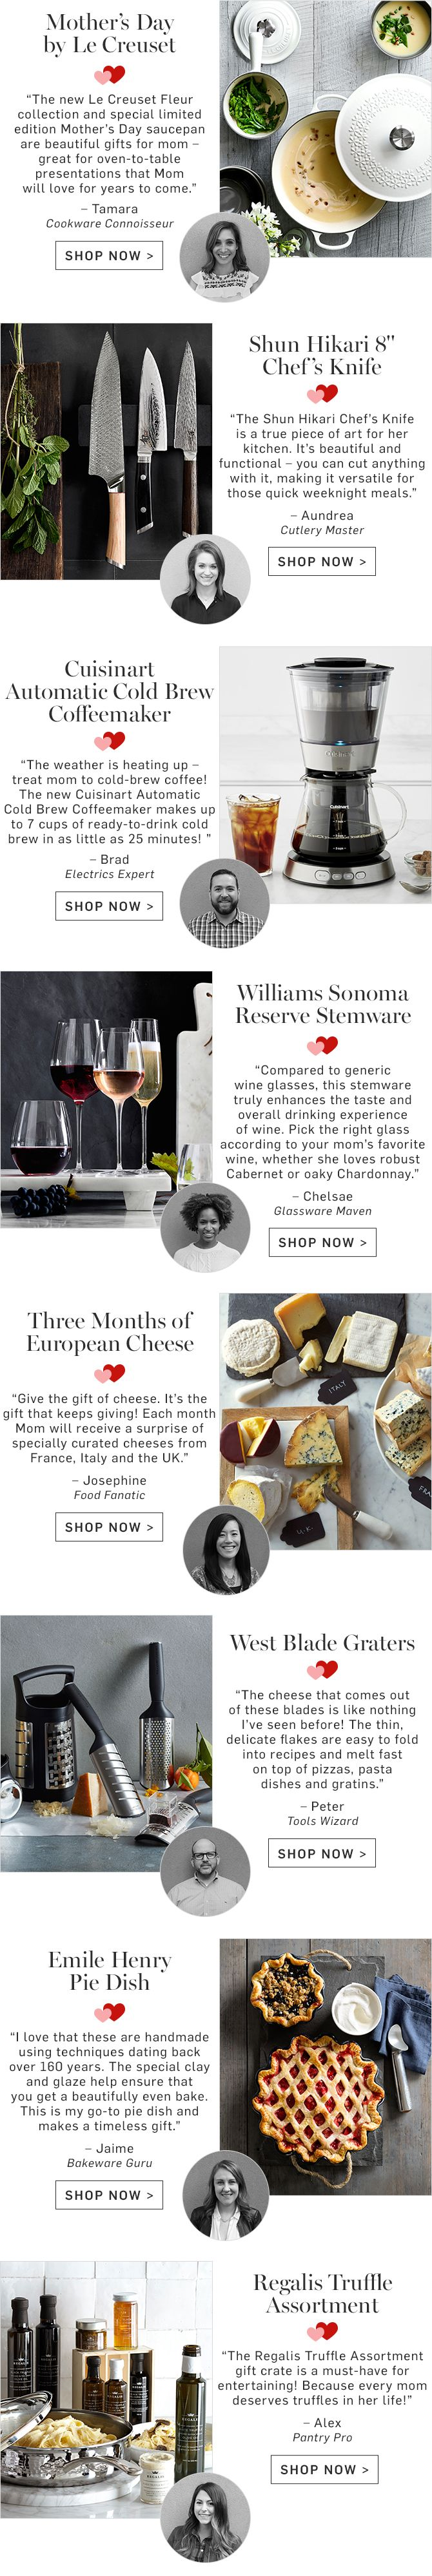 Enjoy a selection of Europe's best artisanal cheeses shipped right from the dairy to your door in three monthly deliveries. These unique cheeses from the U.K., France and Italy offer a generous taste of celebrated regional favorites and a fine balance of flavors, textures and styles - perfect for entertaining. Approx. 4 lb. 12 oz. cheese total. Shipped chilled. Because the items in this collection are crafted in limited quantities, we may occasionally have to make substitutions with similar…